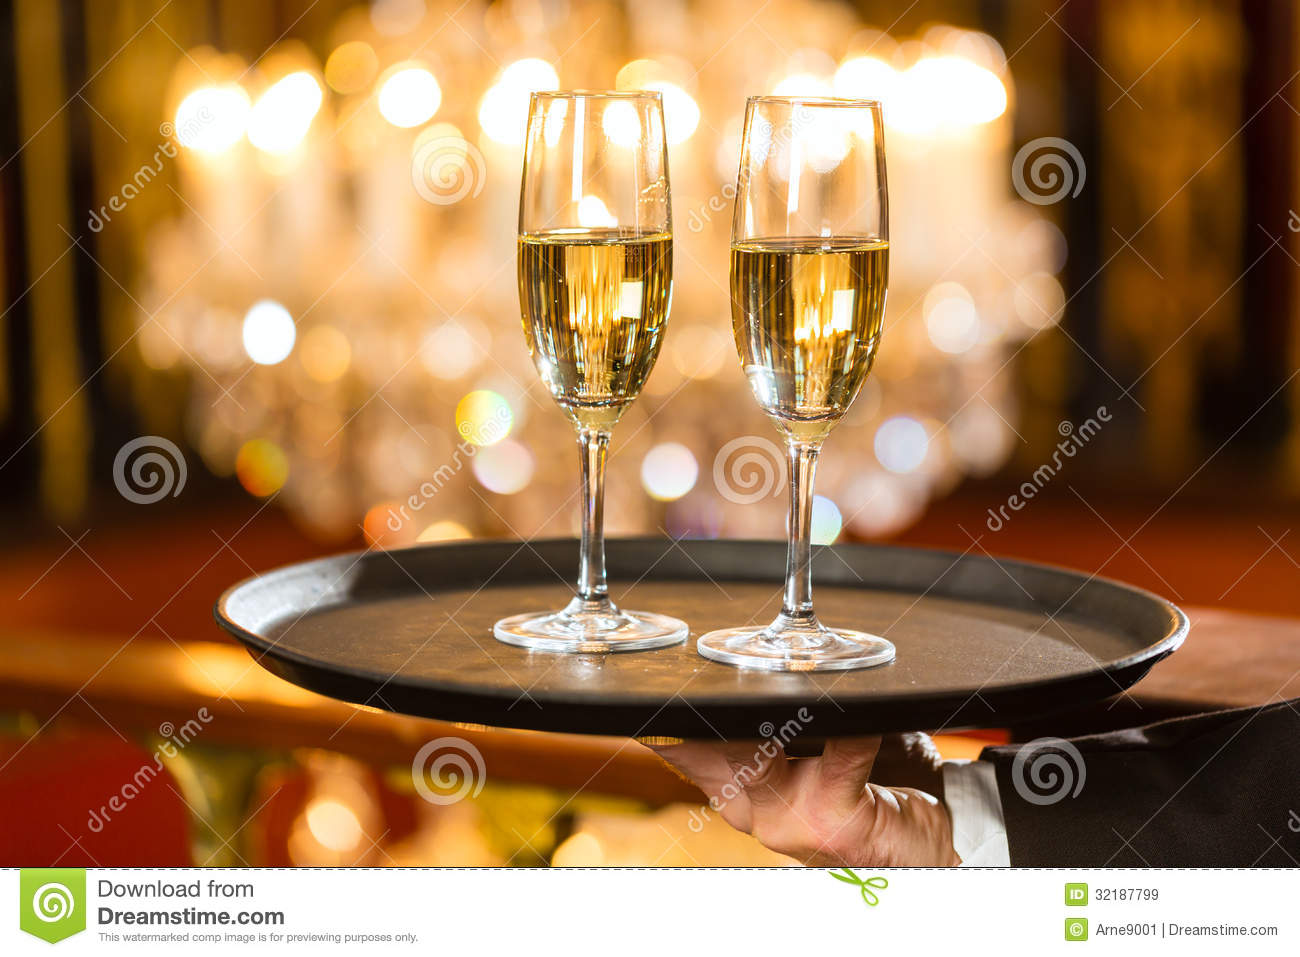 Waiter Served Champagne Glasses On Tray In Restaurant Royalty Free Stock Imag